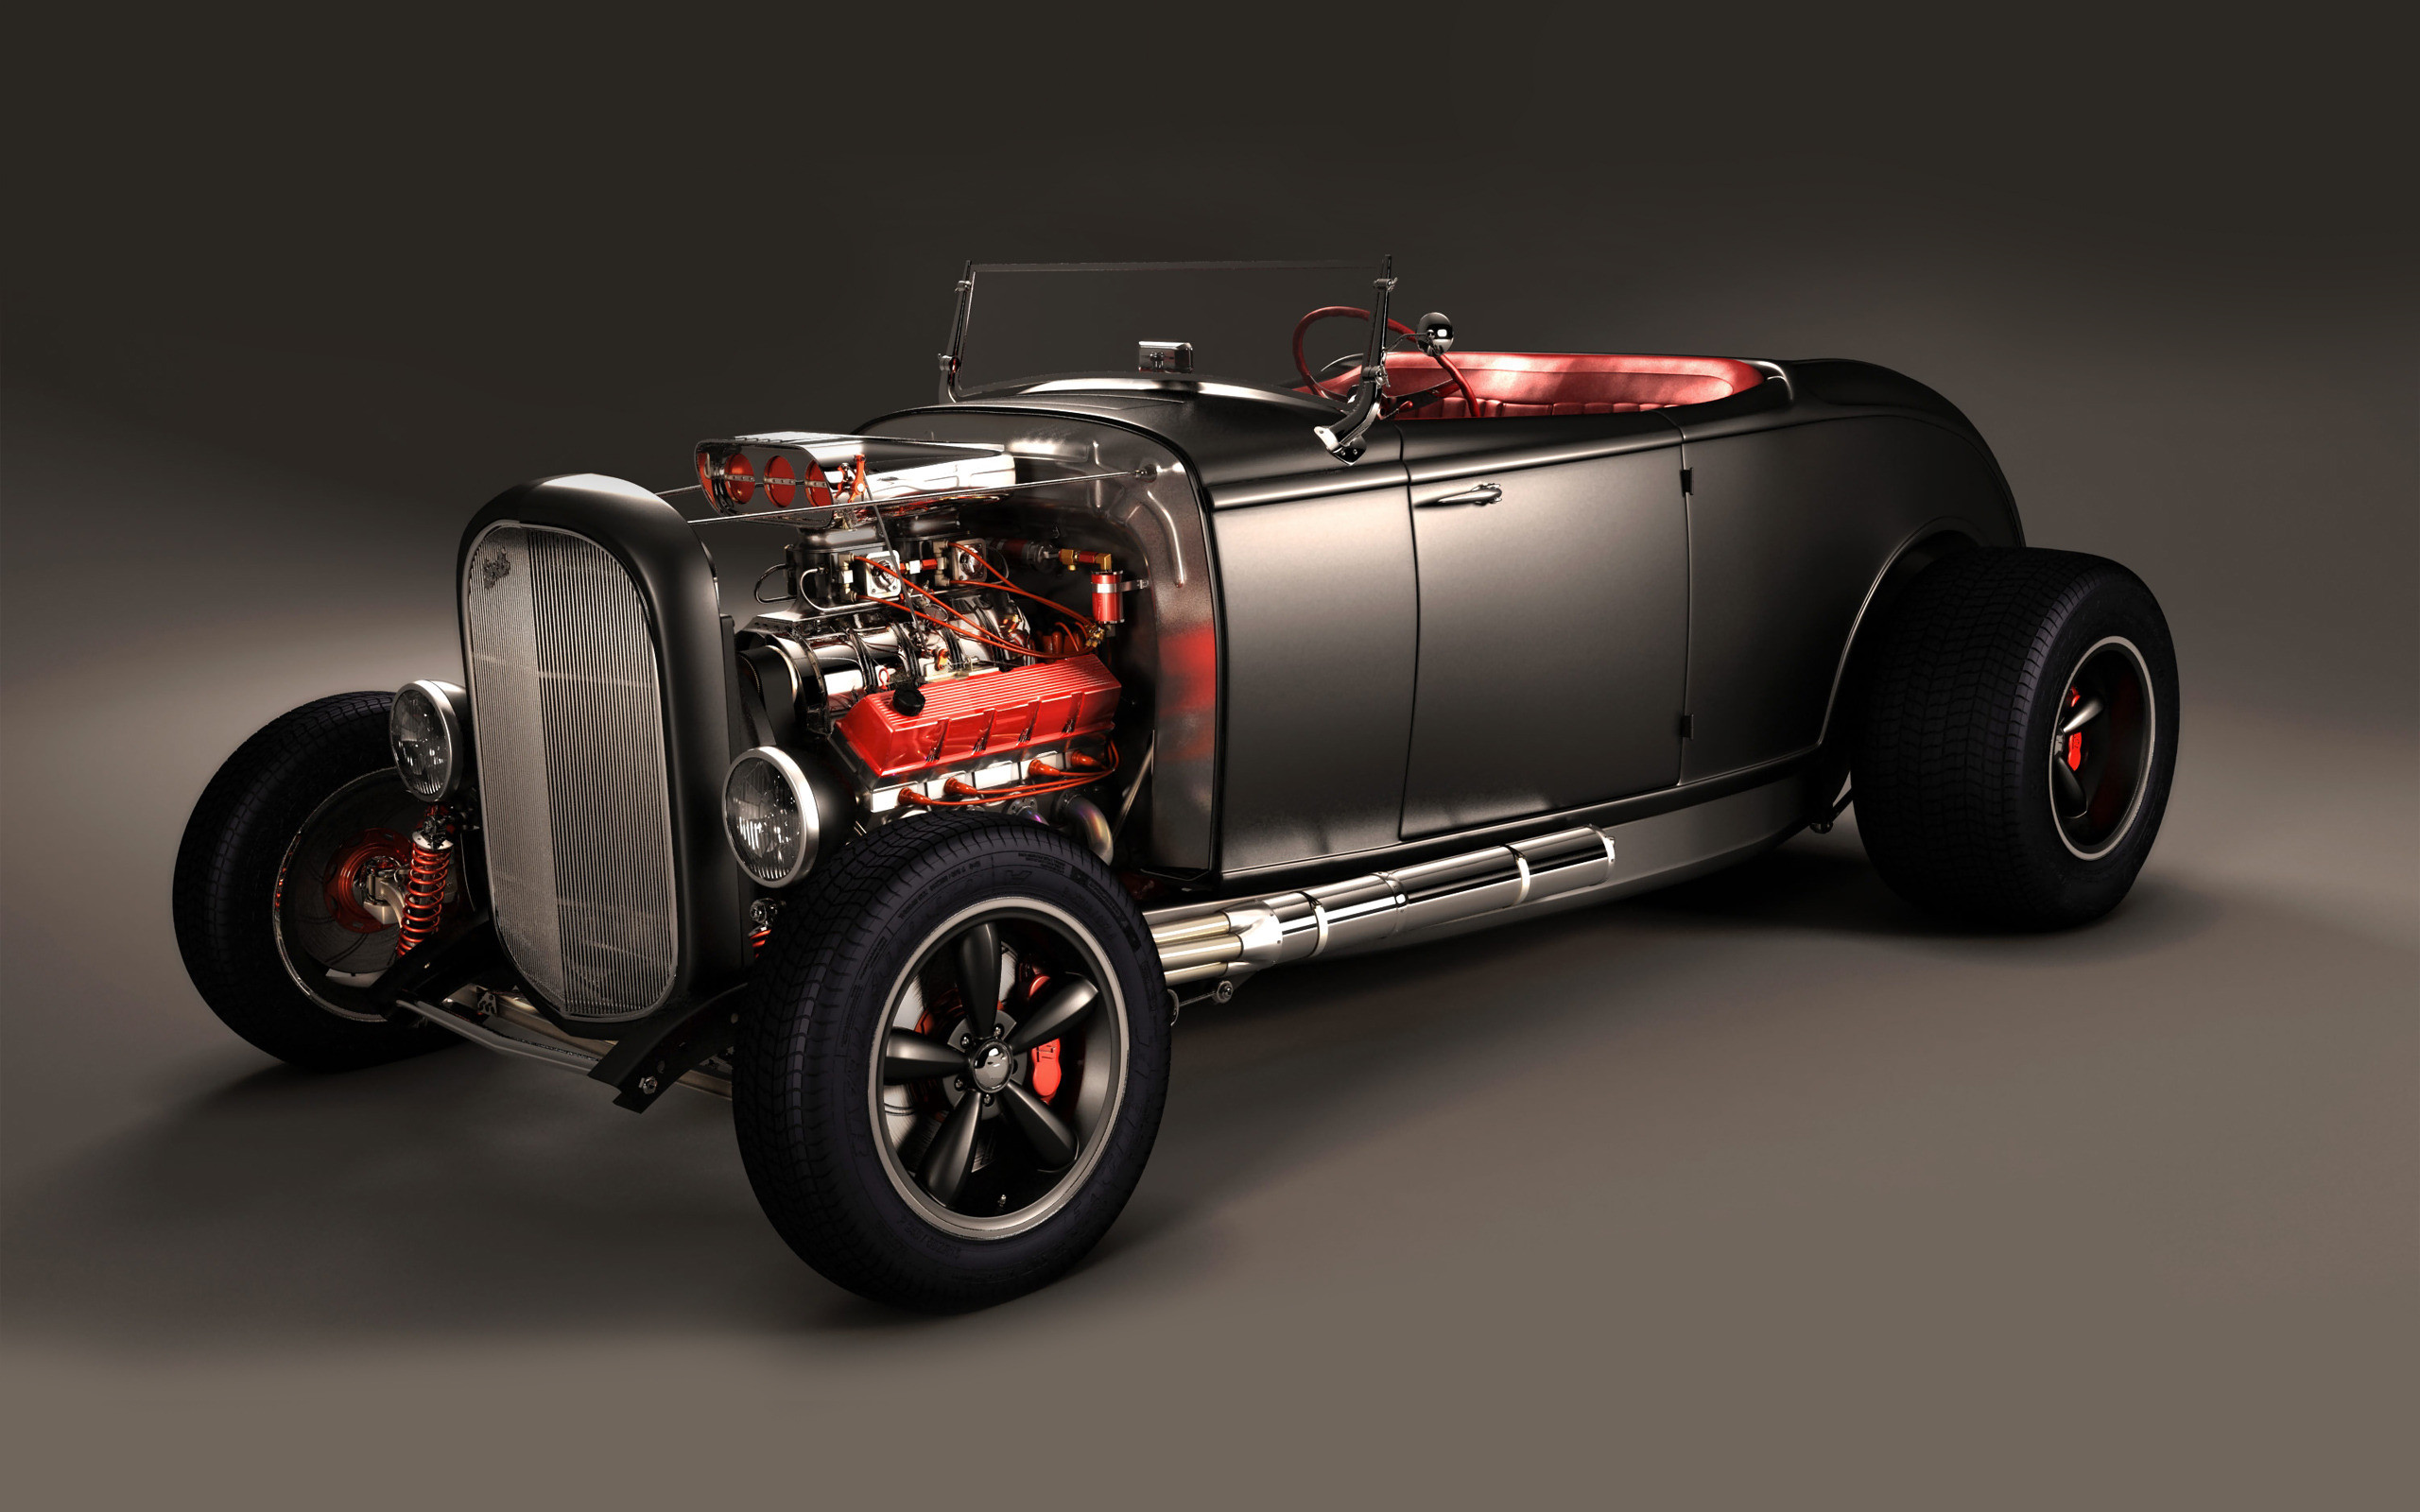 2560x1600 Ford 32 hot rod hi boy by on DeviantArt